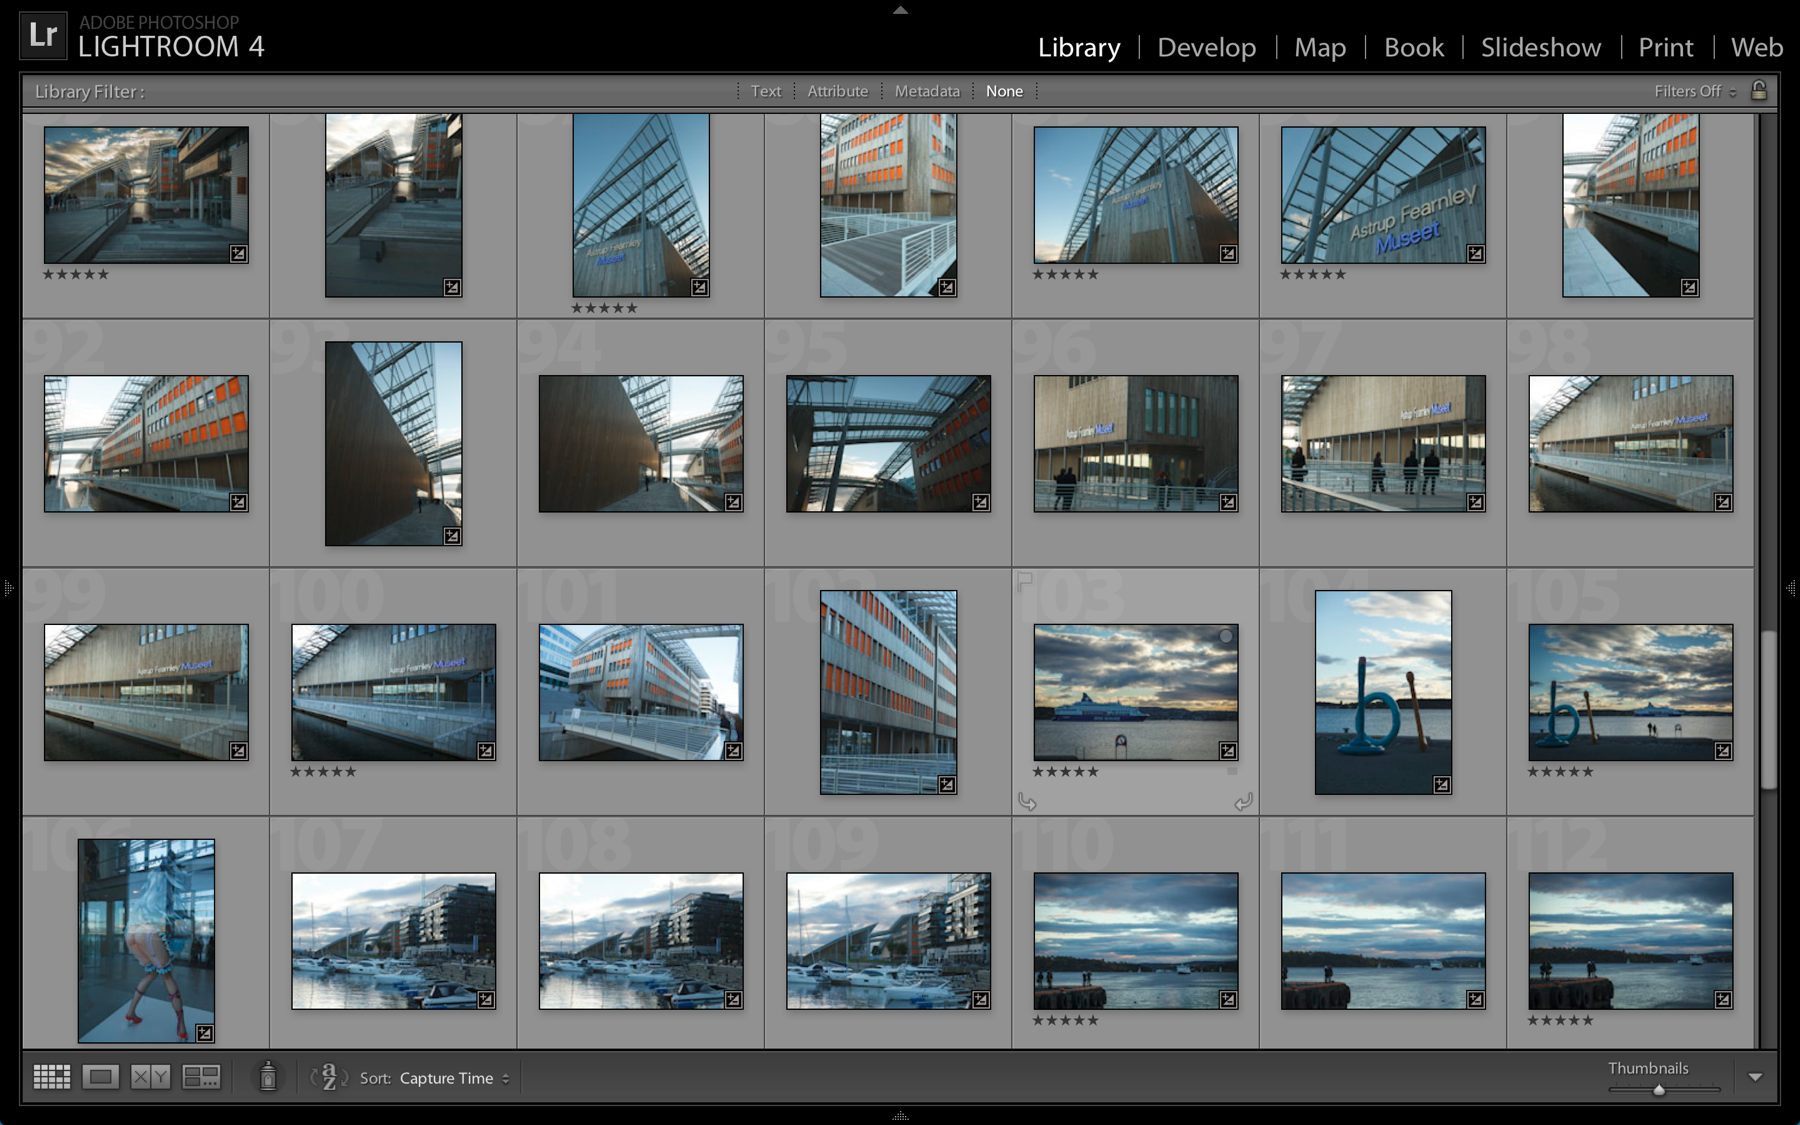 Lightroom Adds Retina Display Support in the Develop Module